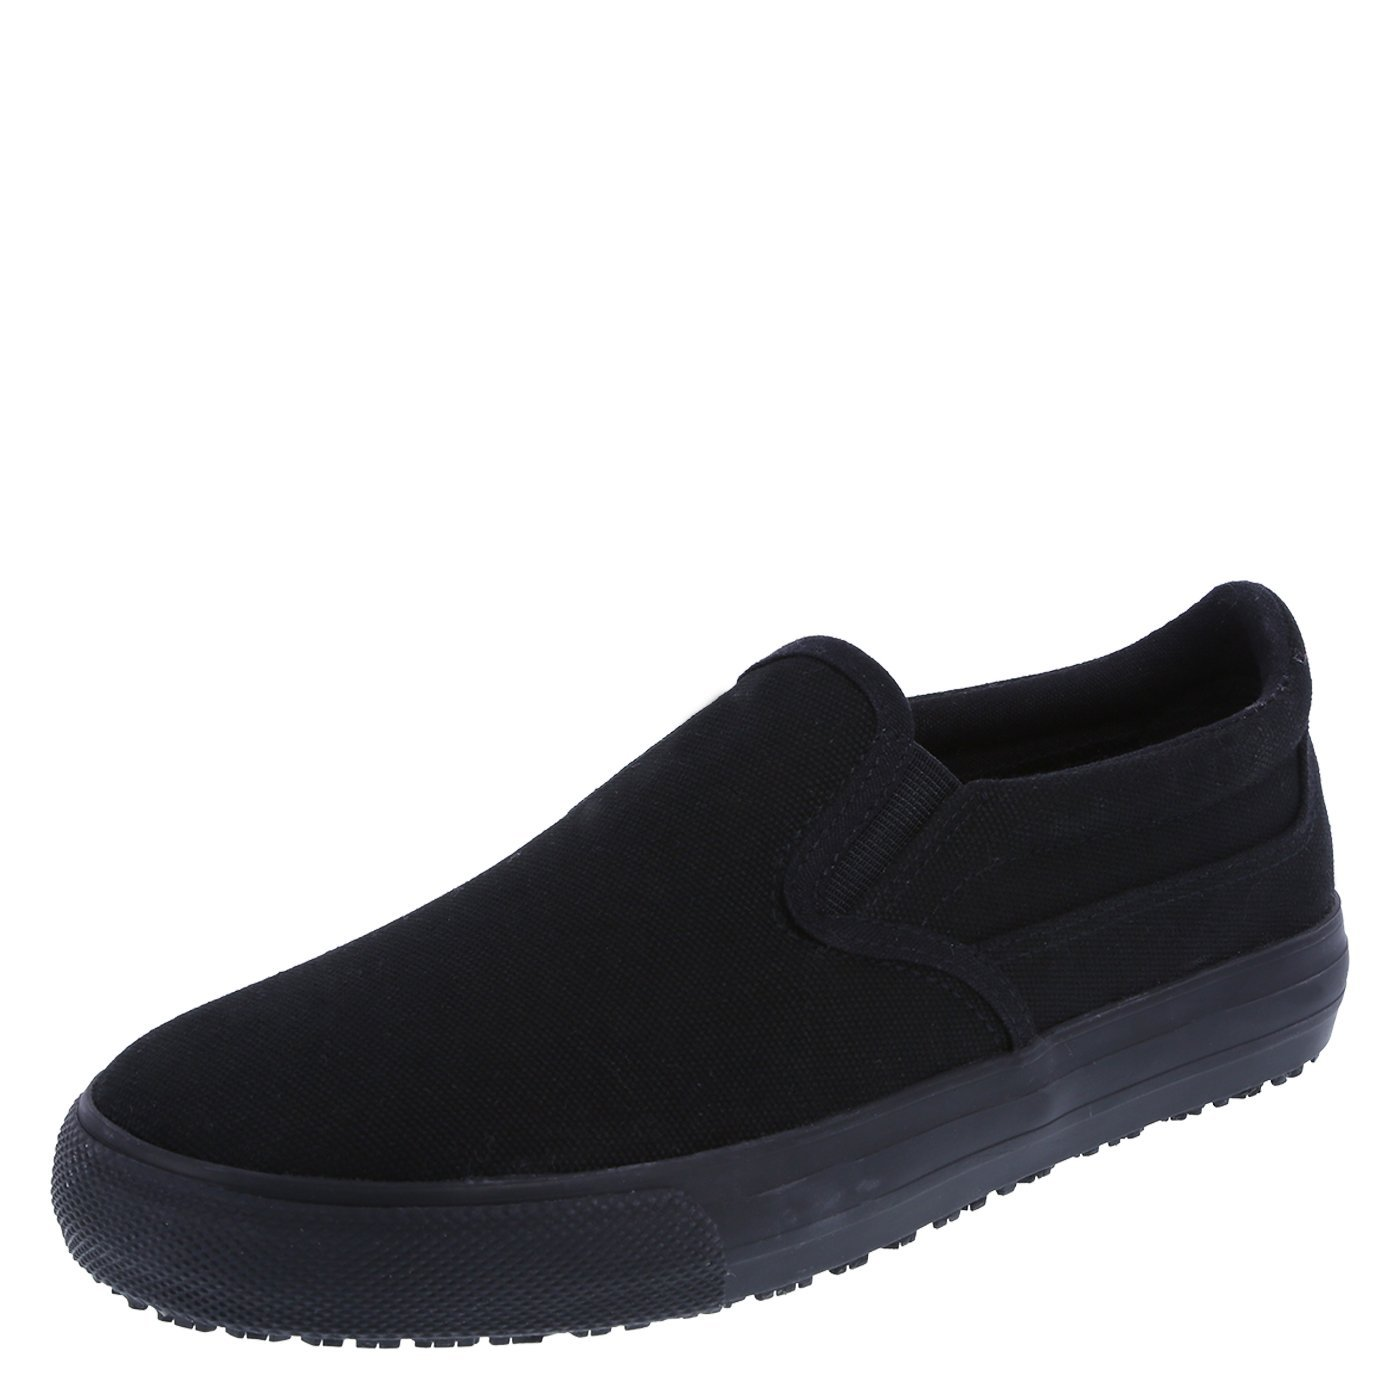 safeTstep Women's Black Canvas Slip Resistant Jen Slip-On 11 Regular